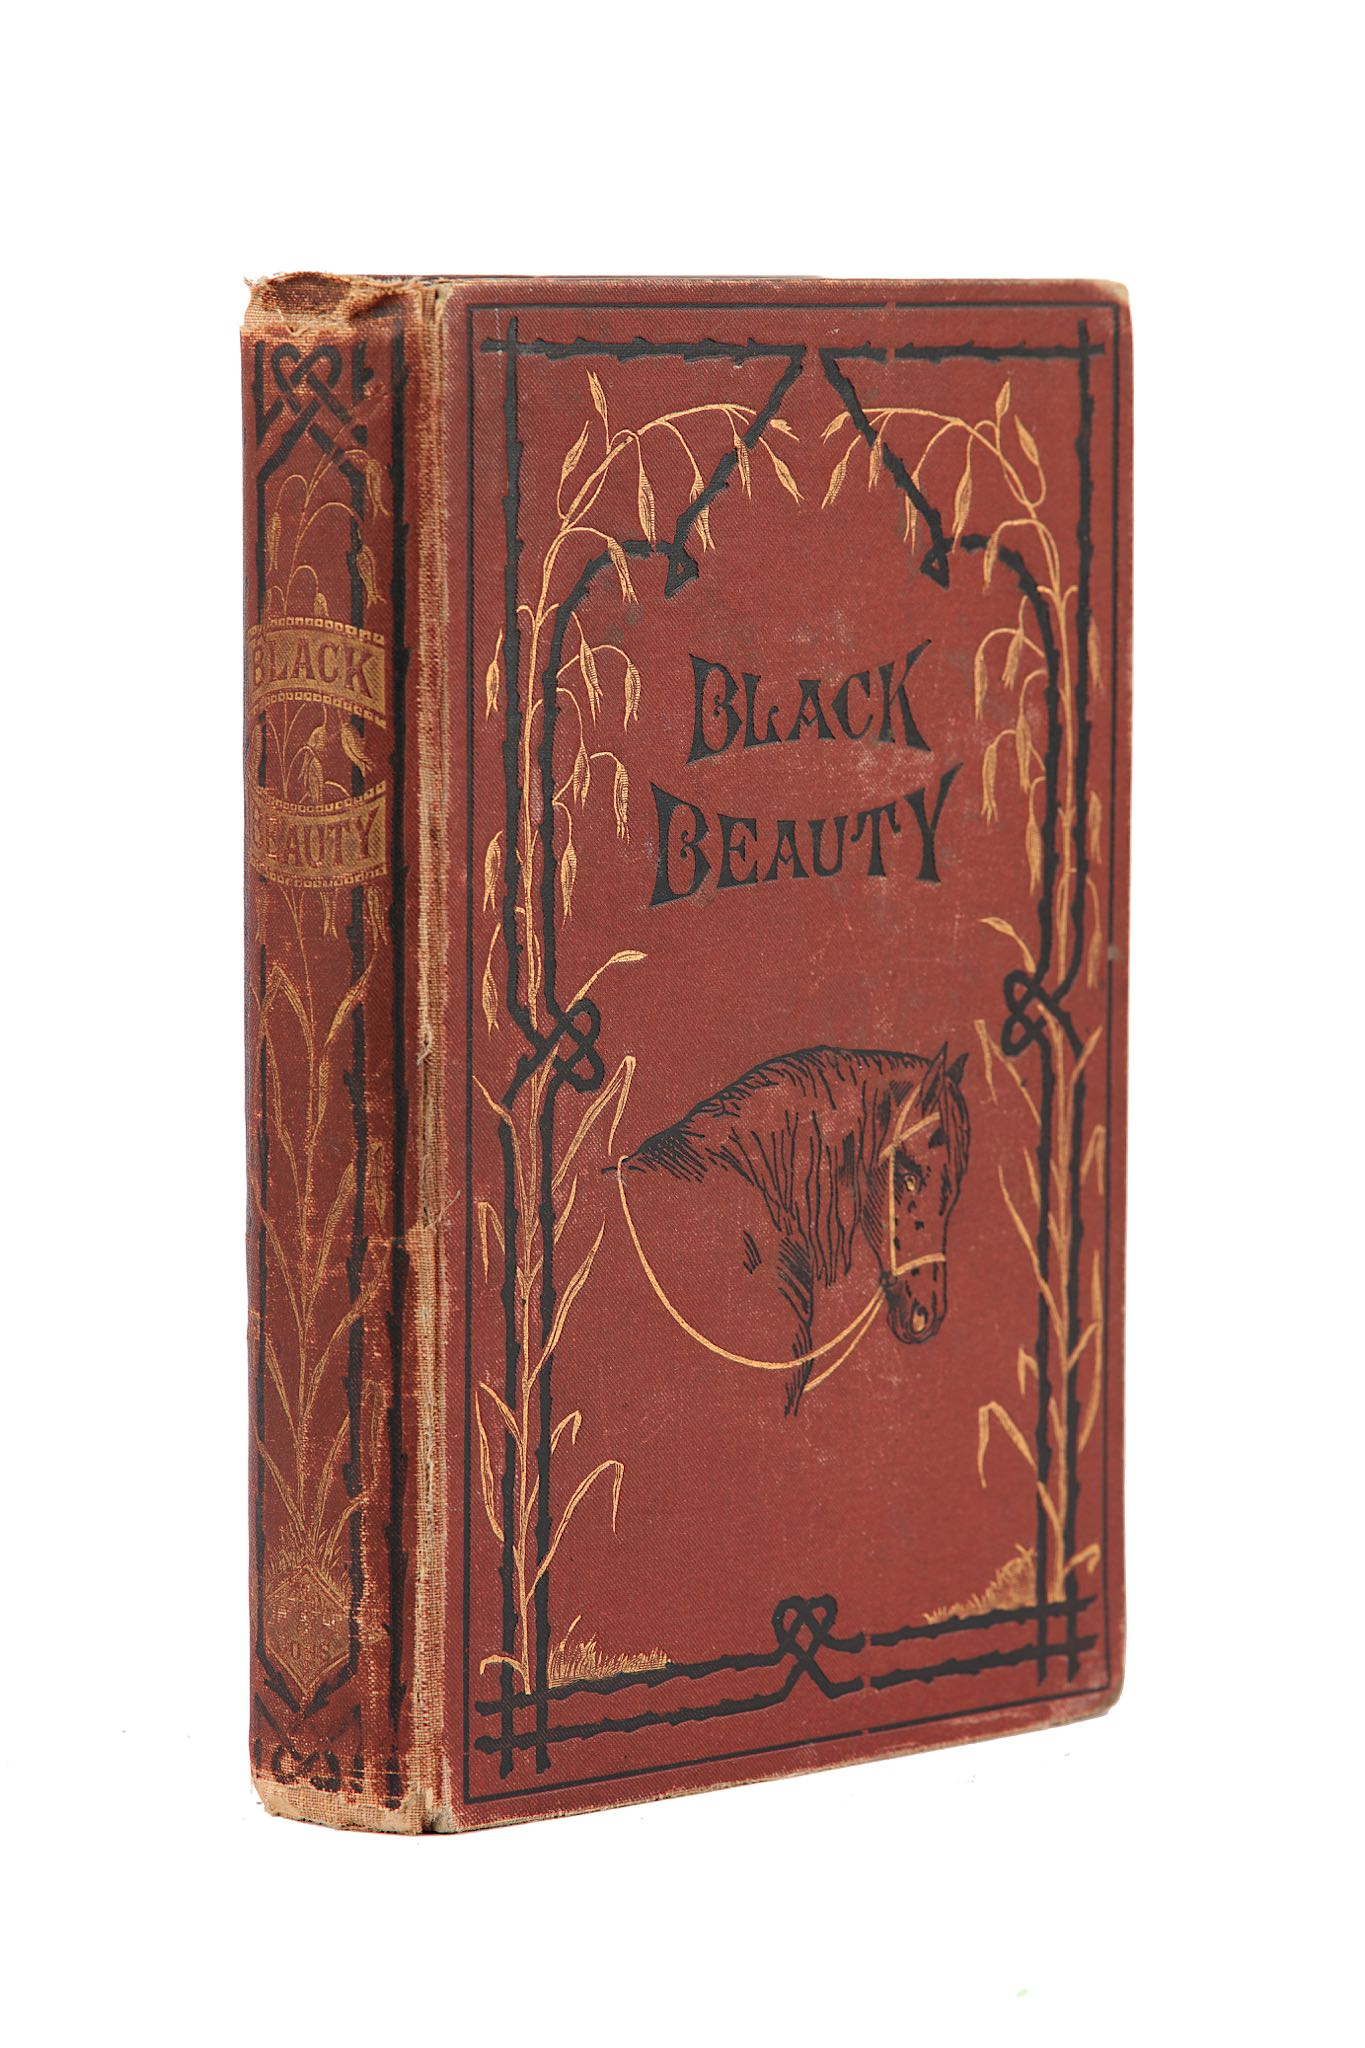 Lot 90 - Sewell (Anna) Black Beauty: His Grooms and Companions. The Autobiography of a Horse. Translated from